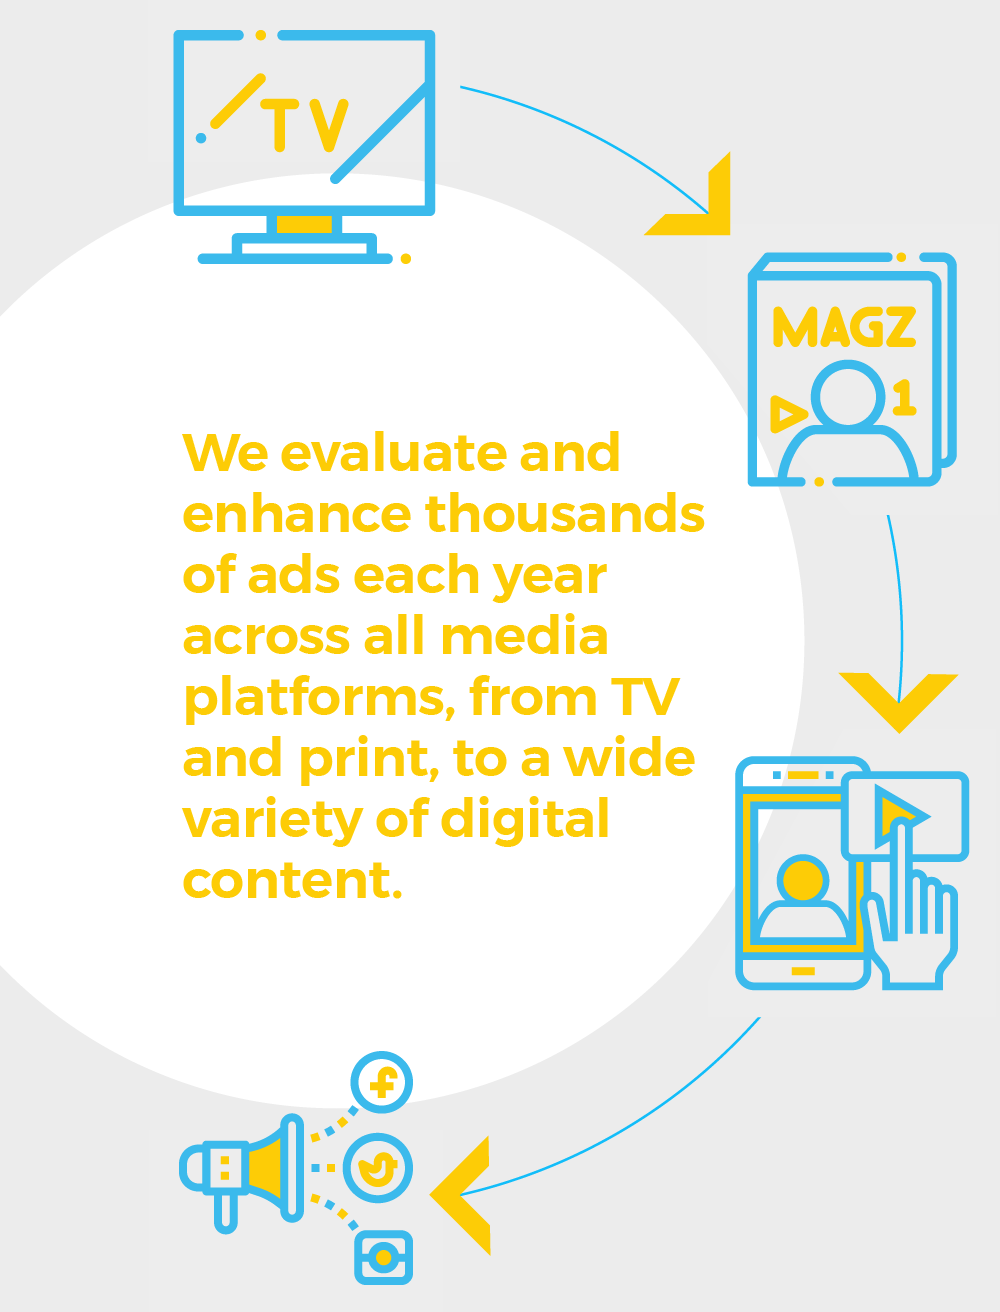 We evaluate and enhance thousands of ads each year across all media platforms, from TV and print, to a wide variety of digital content